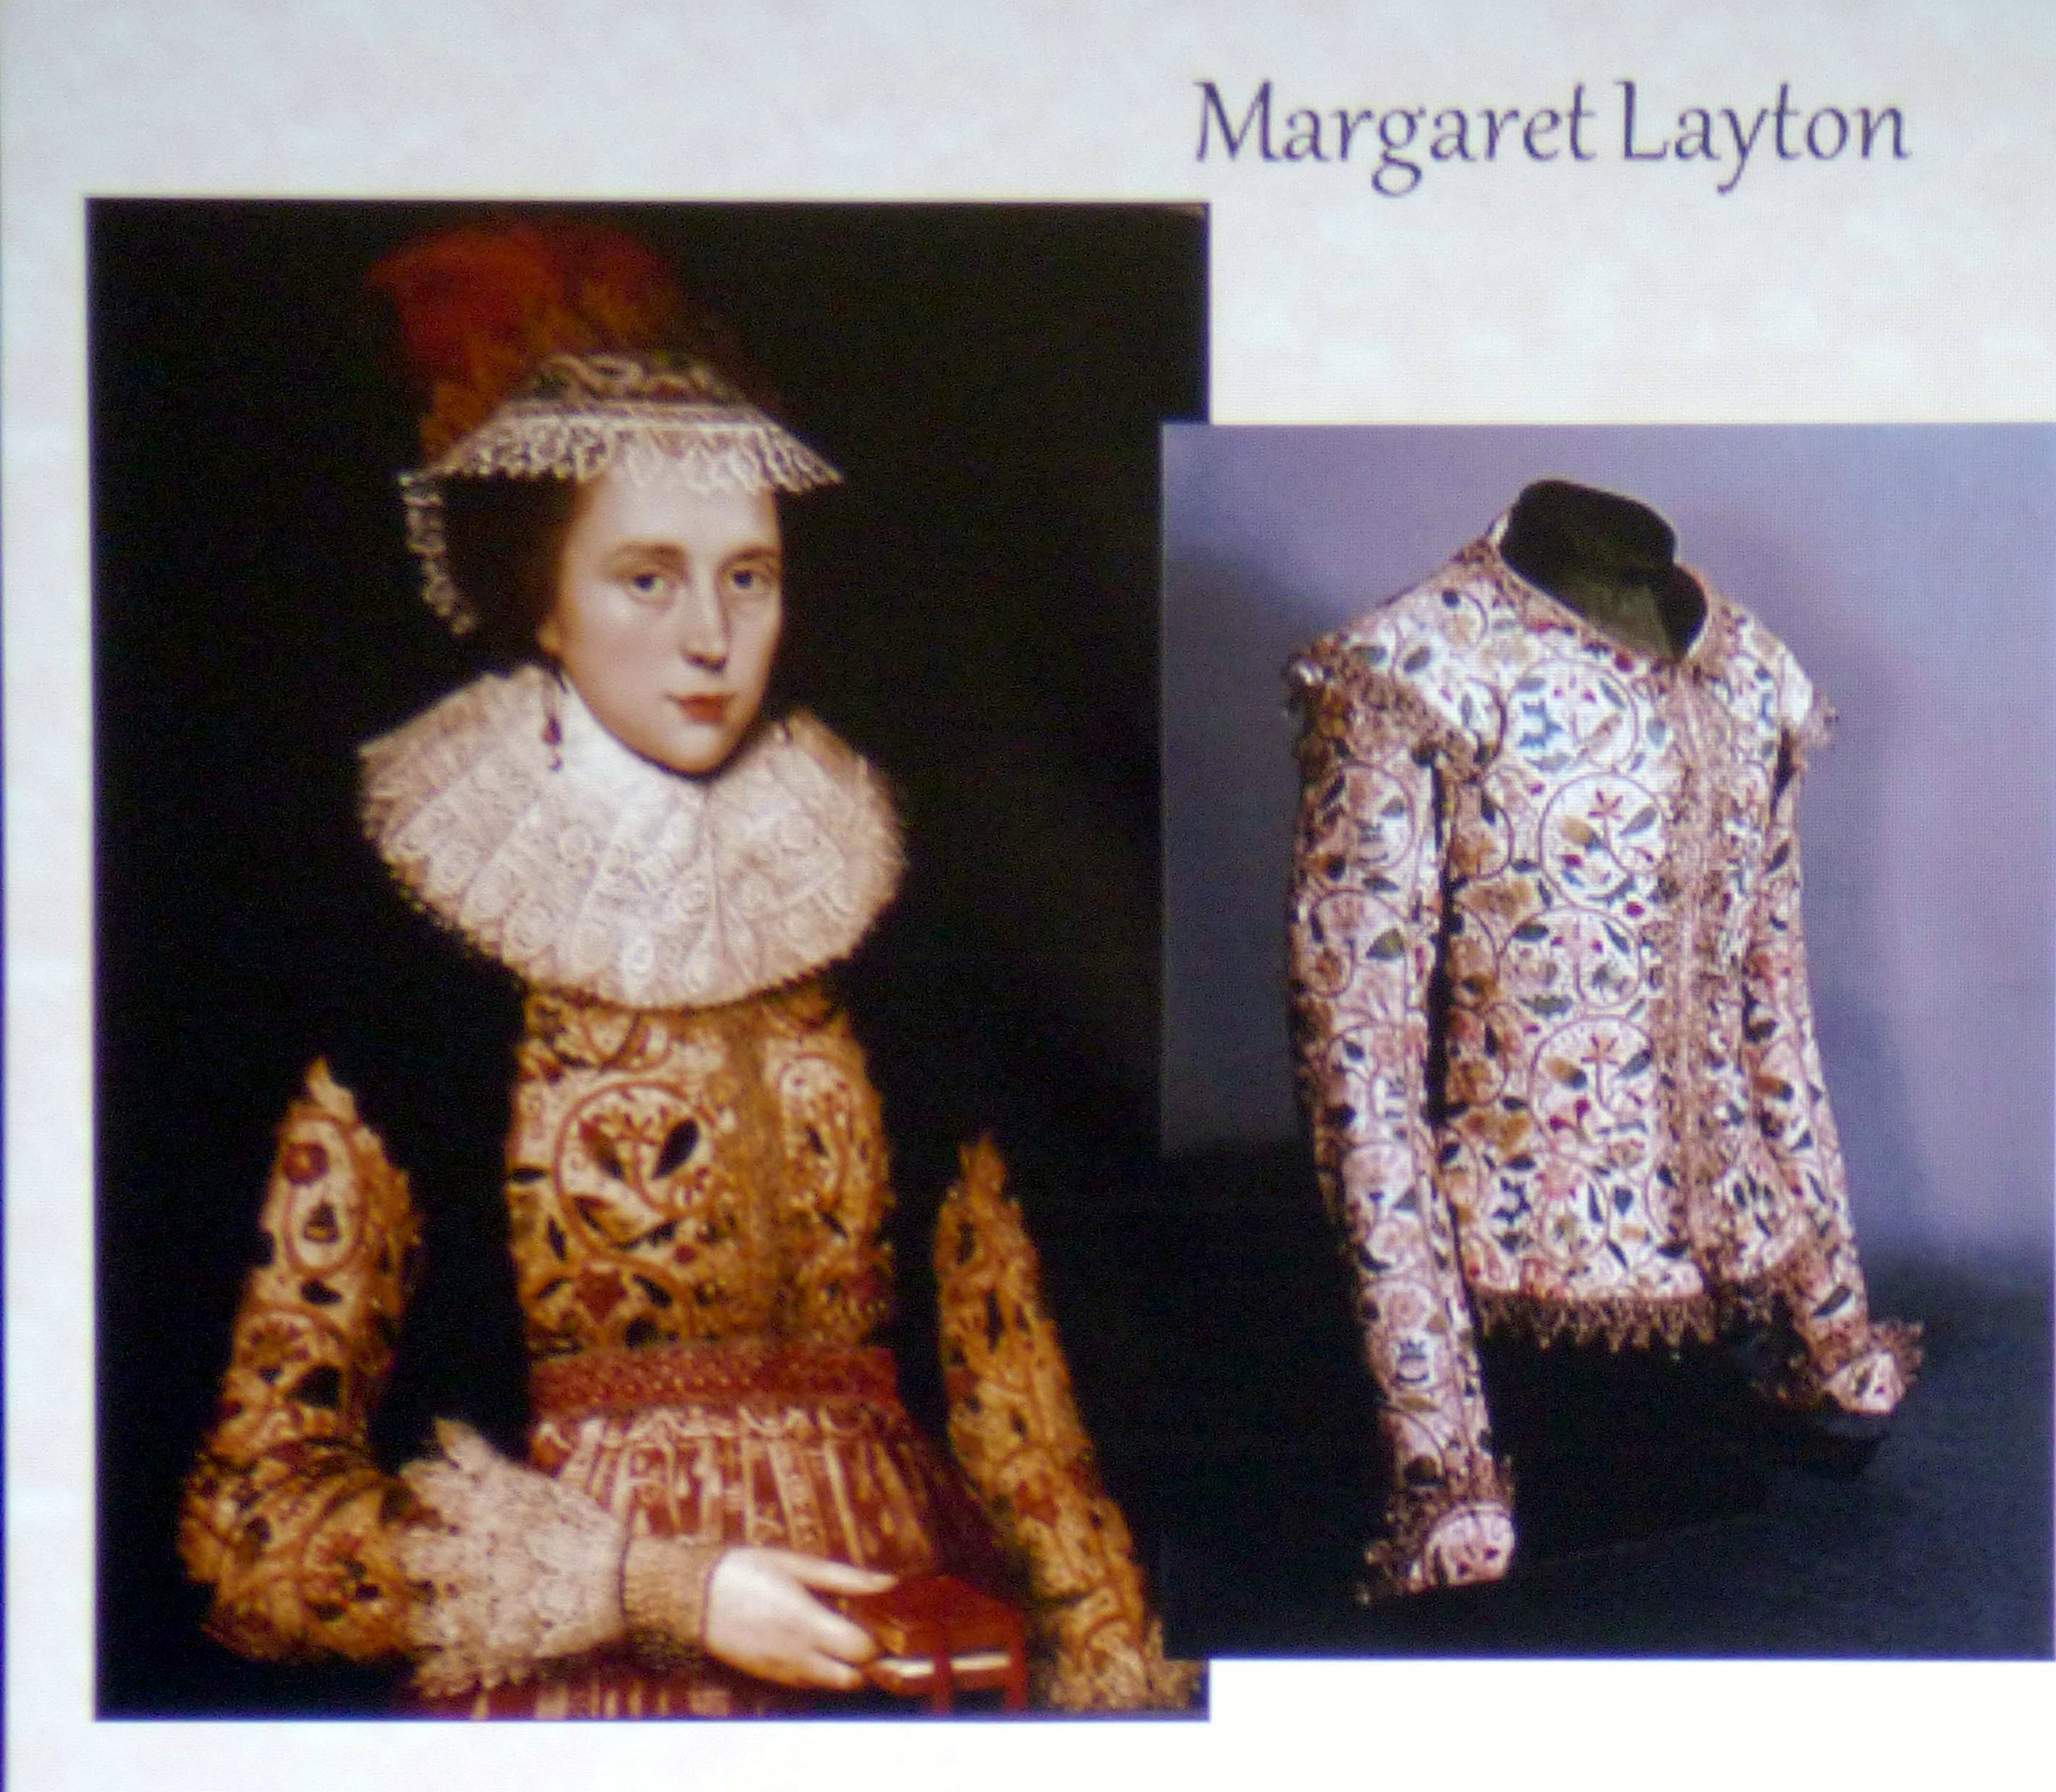 portrait of Margaret Layton, born in 1590 showing her embroidered jacket, Embroidery of a Jacobean Lady, Talk by Caroline Richardson, Jan 2019